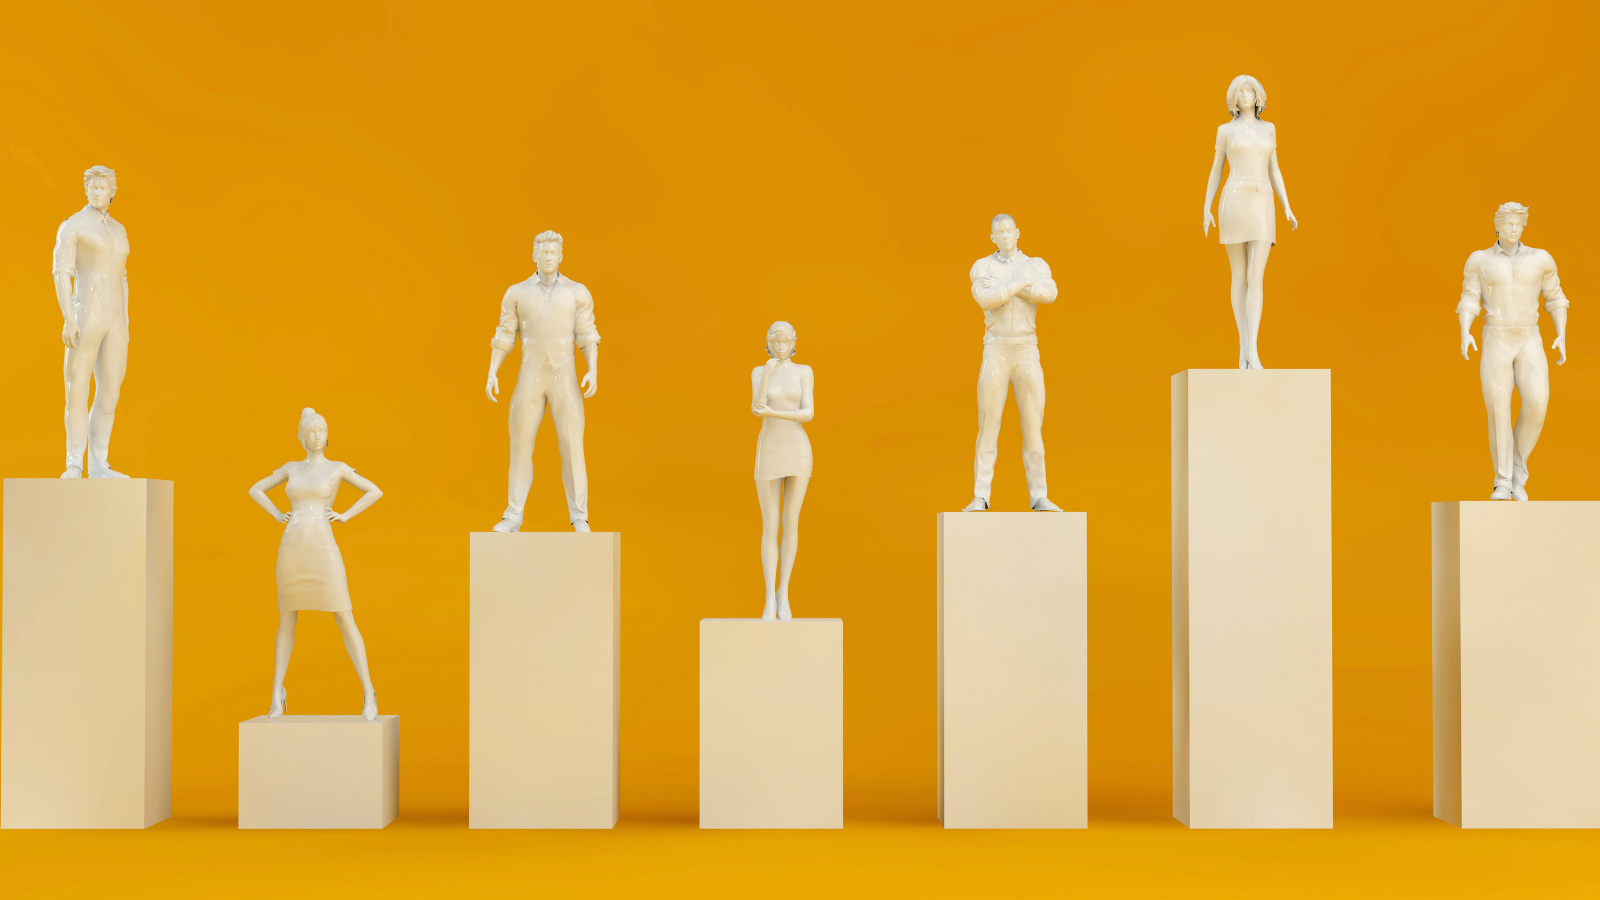 Why You Should Have a Talent-Based Sales Organization